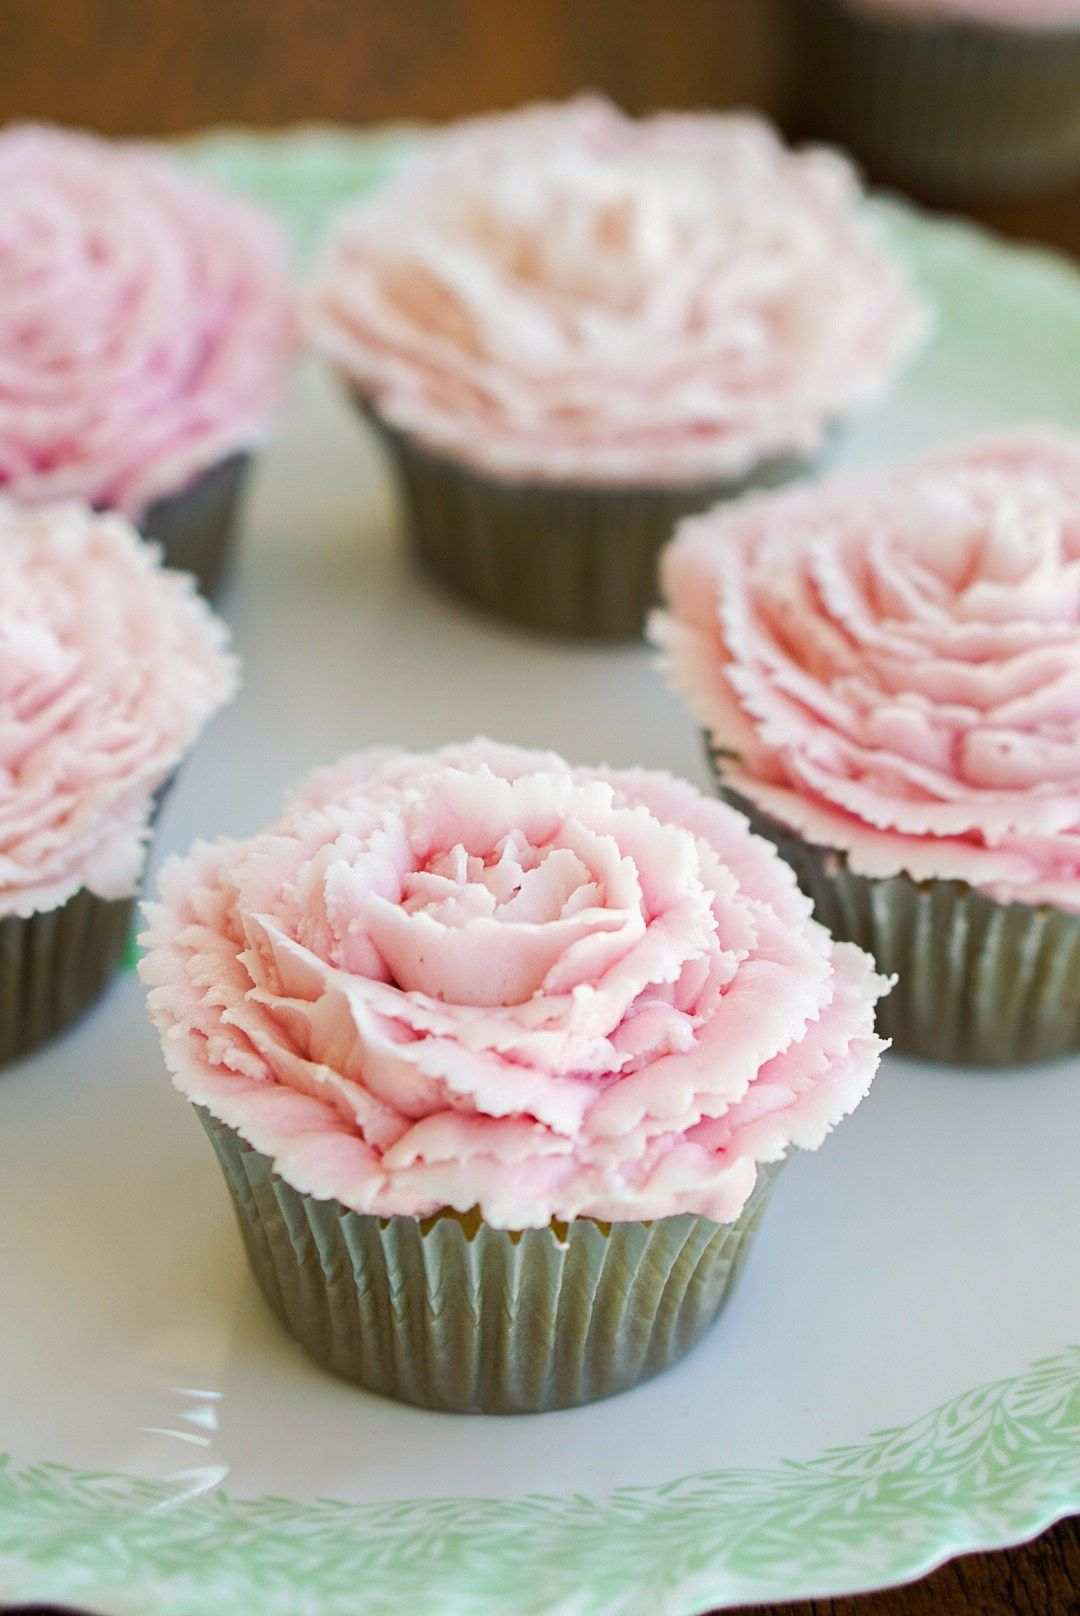 Vegan Cardamom Rose Cupcakes Light And Fluffy Vanilla Delicately Spiced With Perfumed Rosewater Topped A Pretty Pink